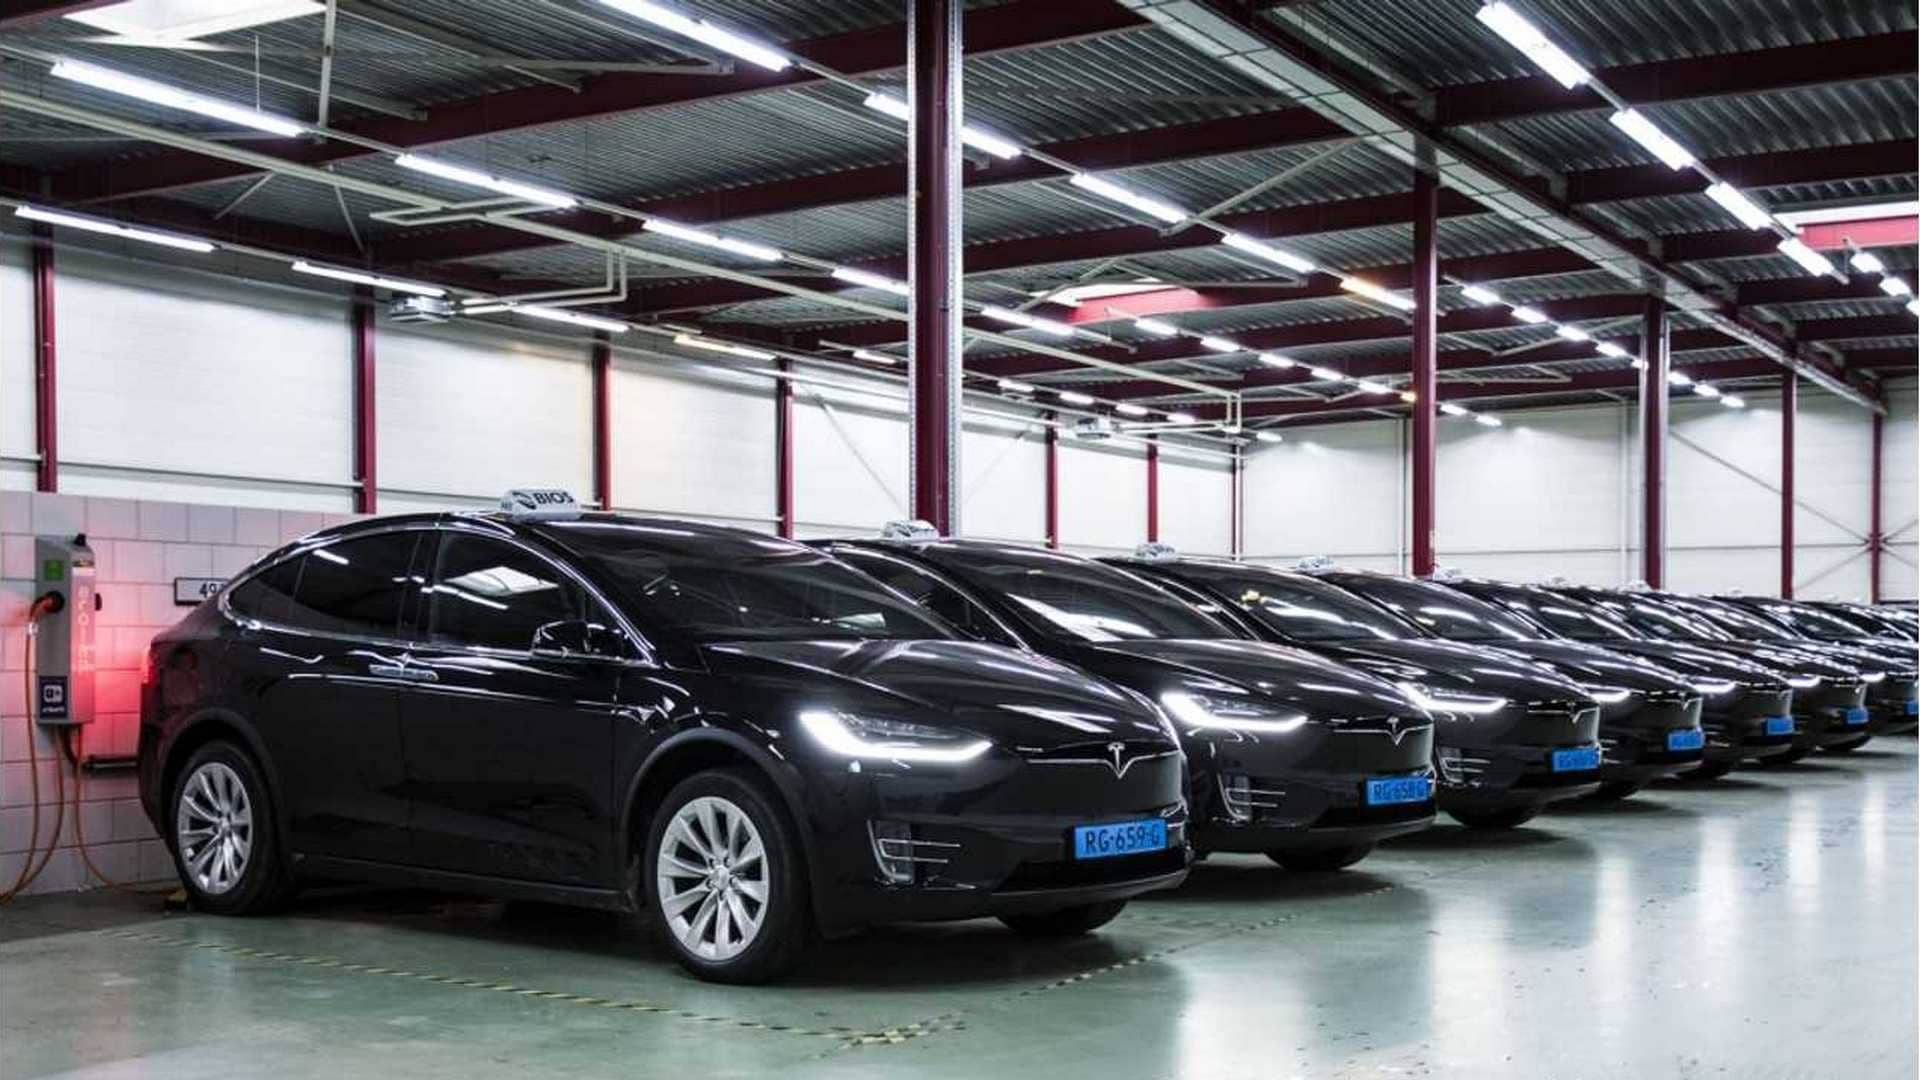 reliability-dutch-taxi-drivers-sue-tesla-for-model-s-problemsdd